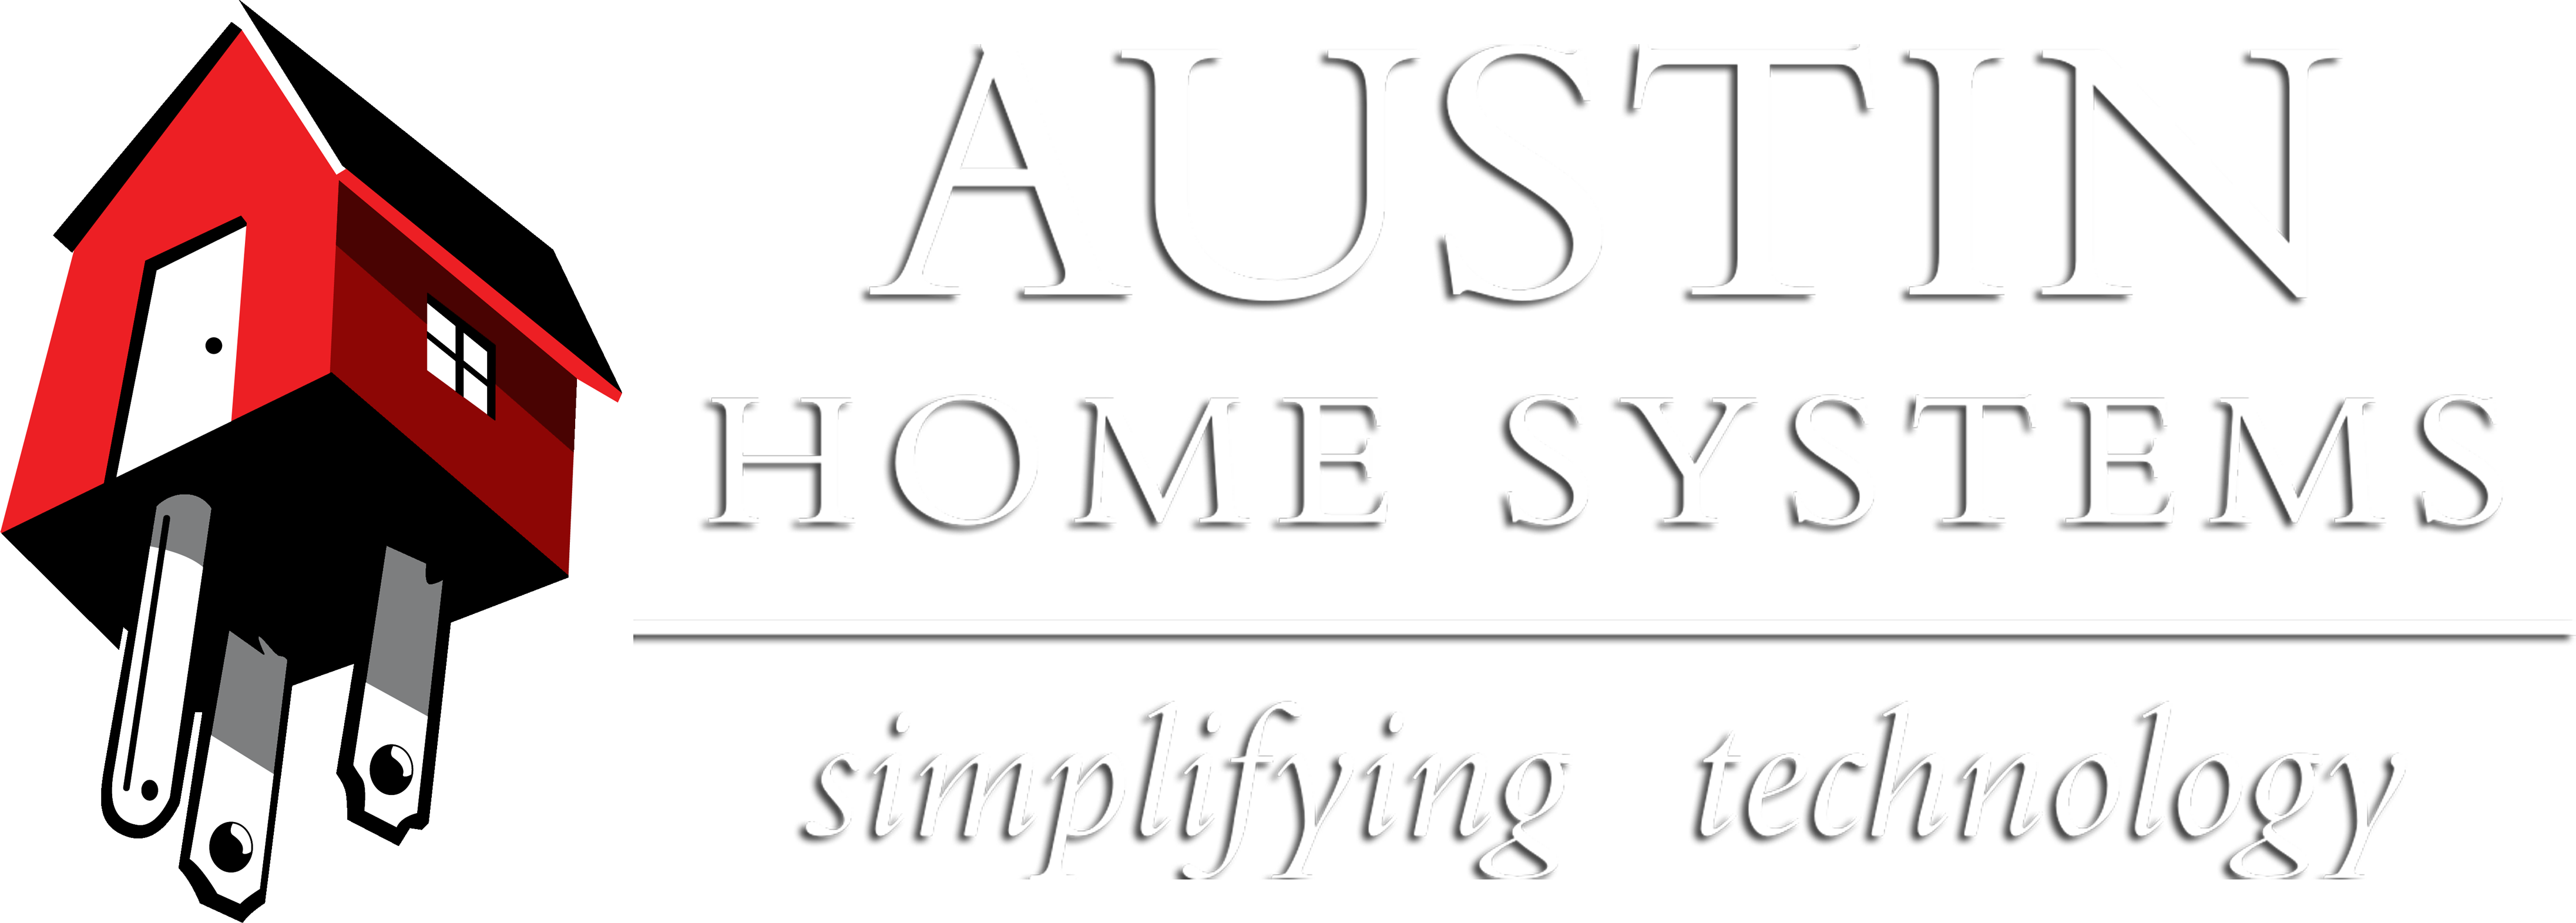 Austin Home Systems